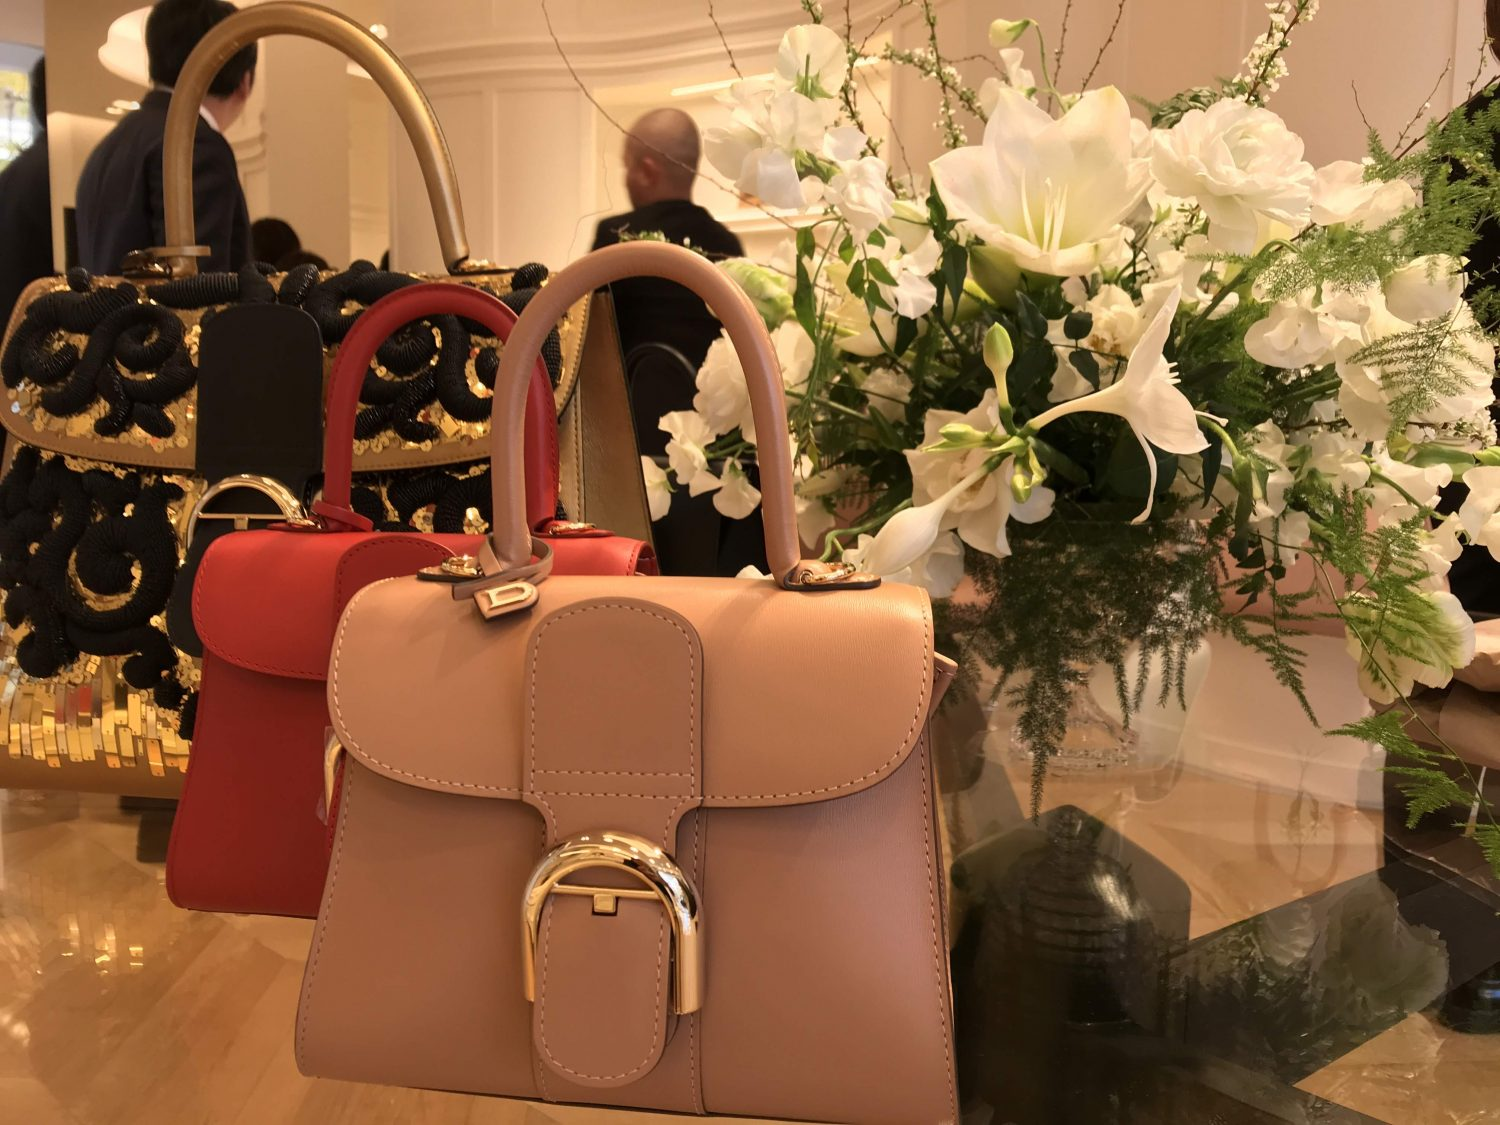 LUXURIOUS TIME at DELVAUX